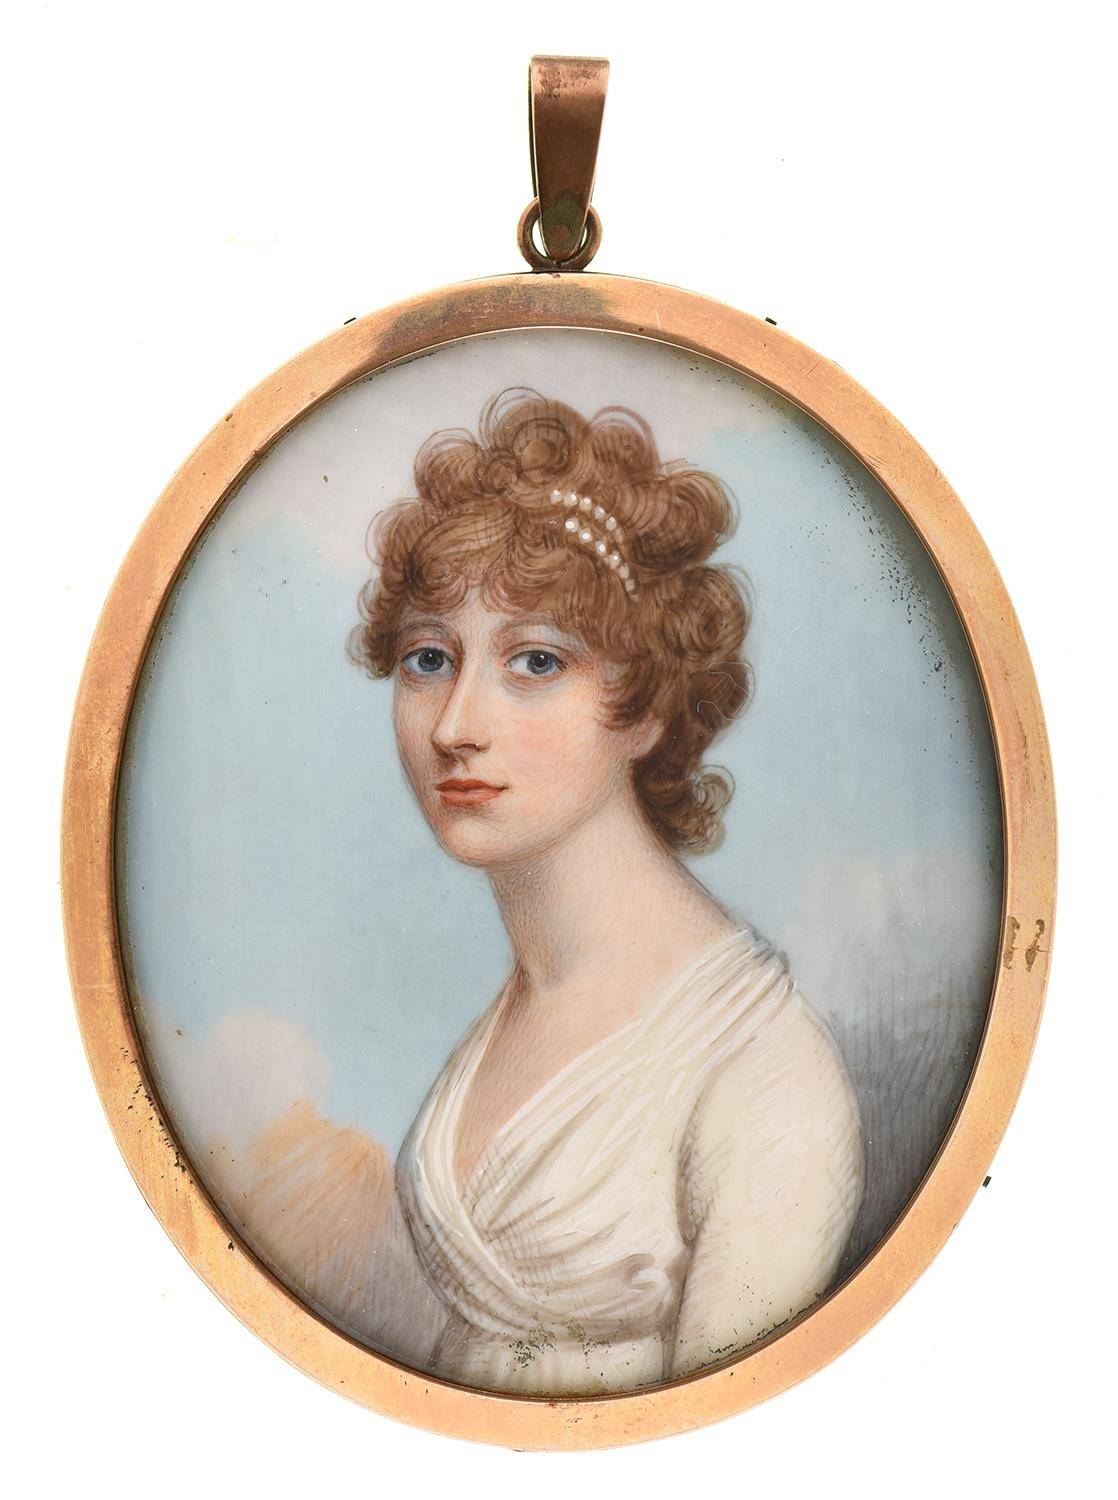 EnglishSchool, c1790 - Portrait Miniature of a Lady, in a white dress and pearls in her curly light